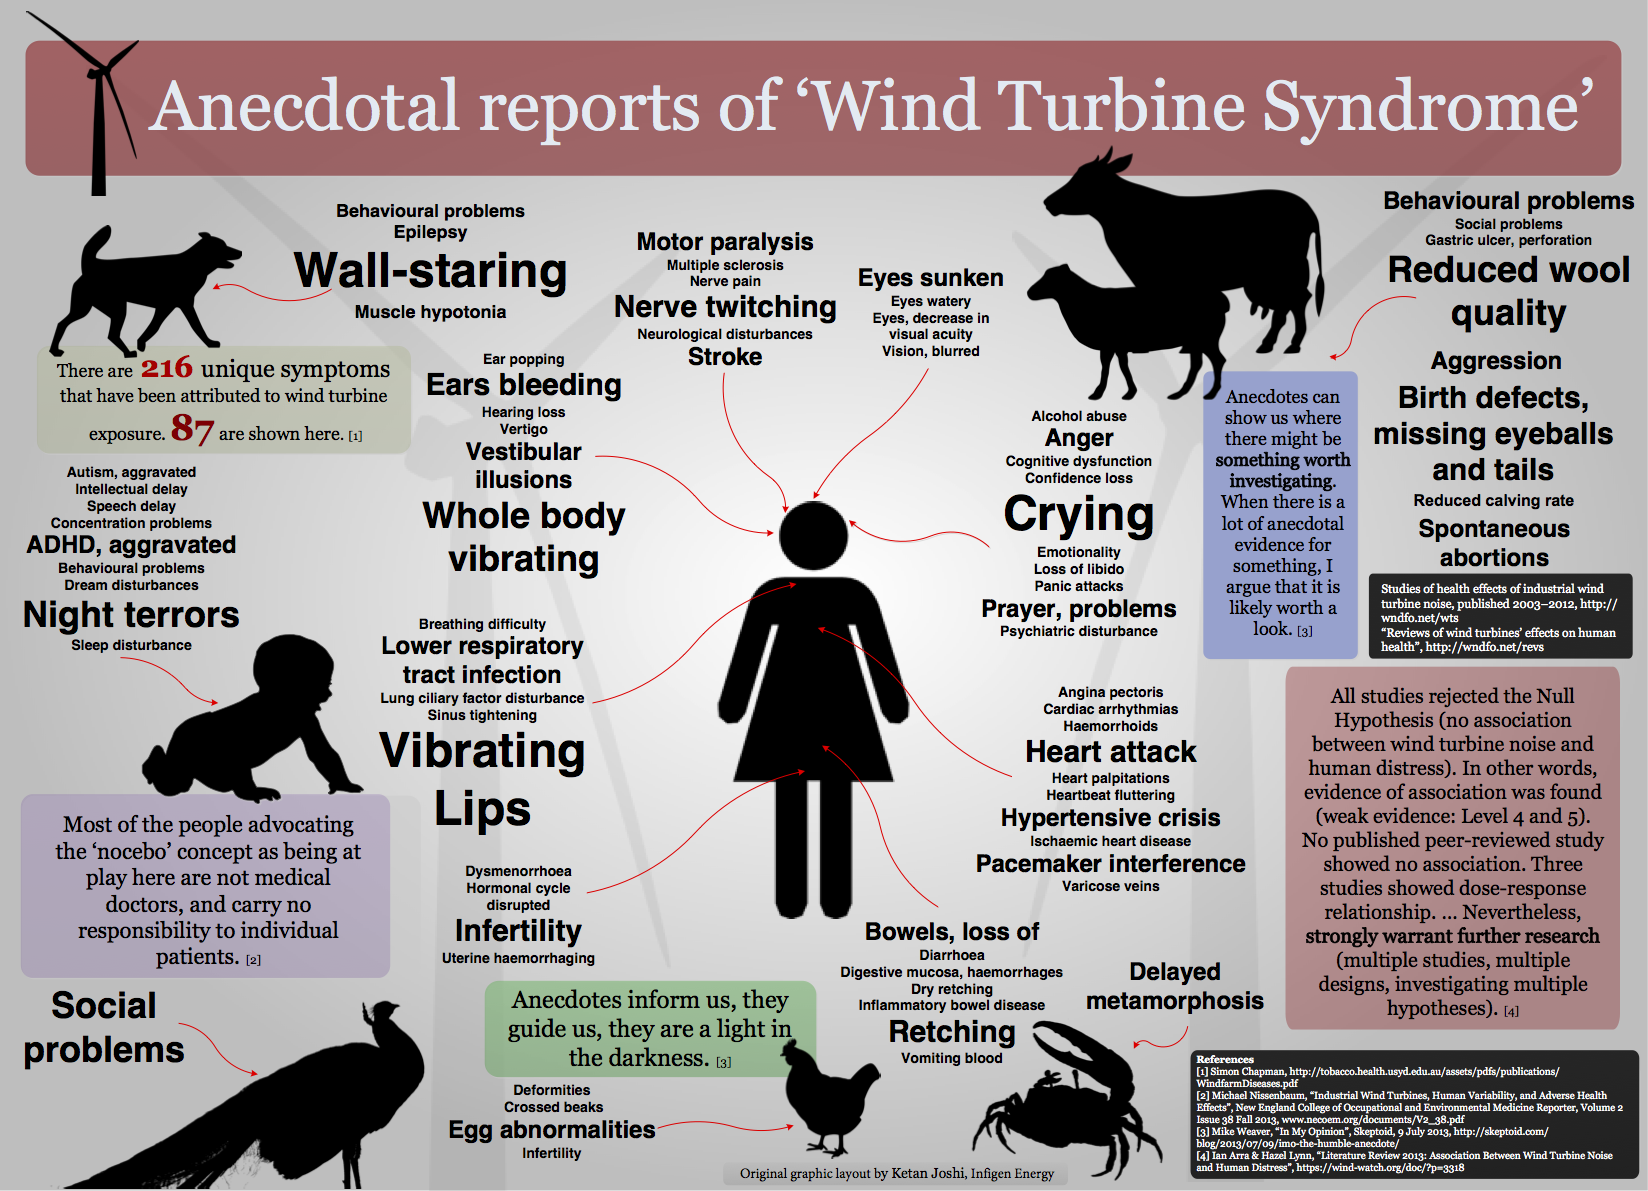 Anecdotal reports of  wind turbine syndrome